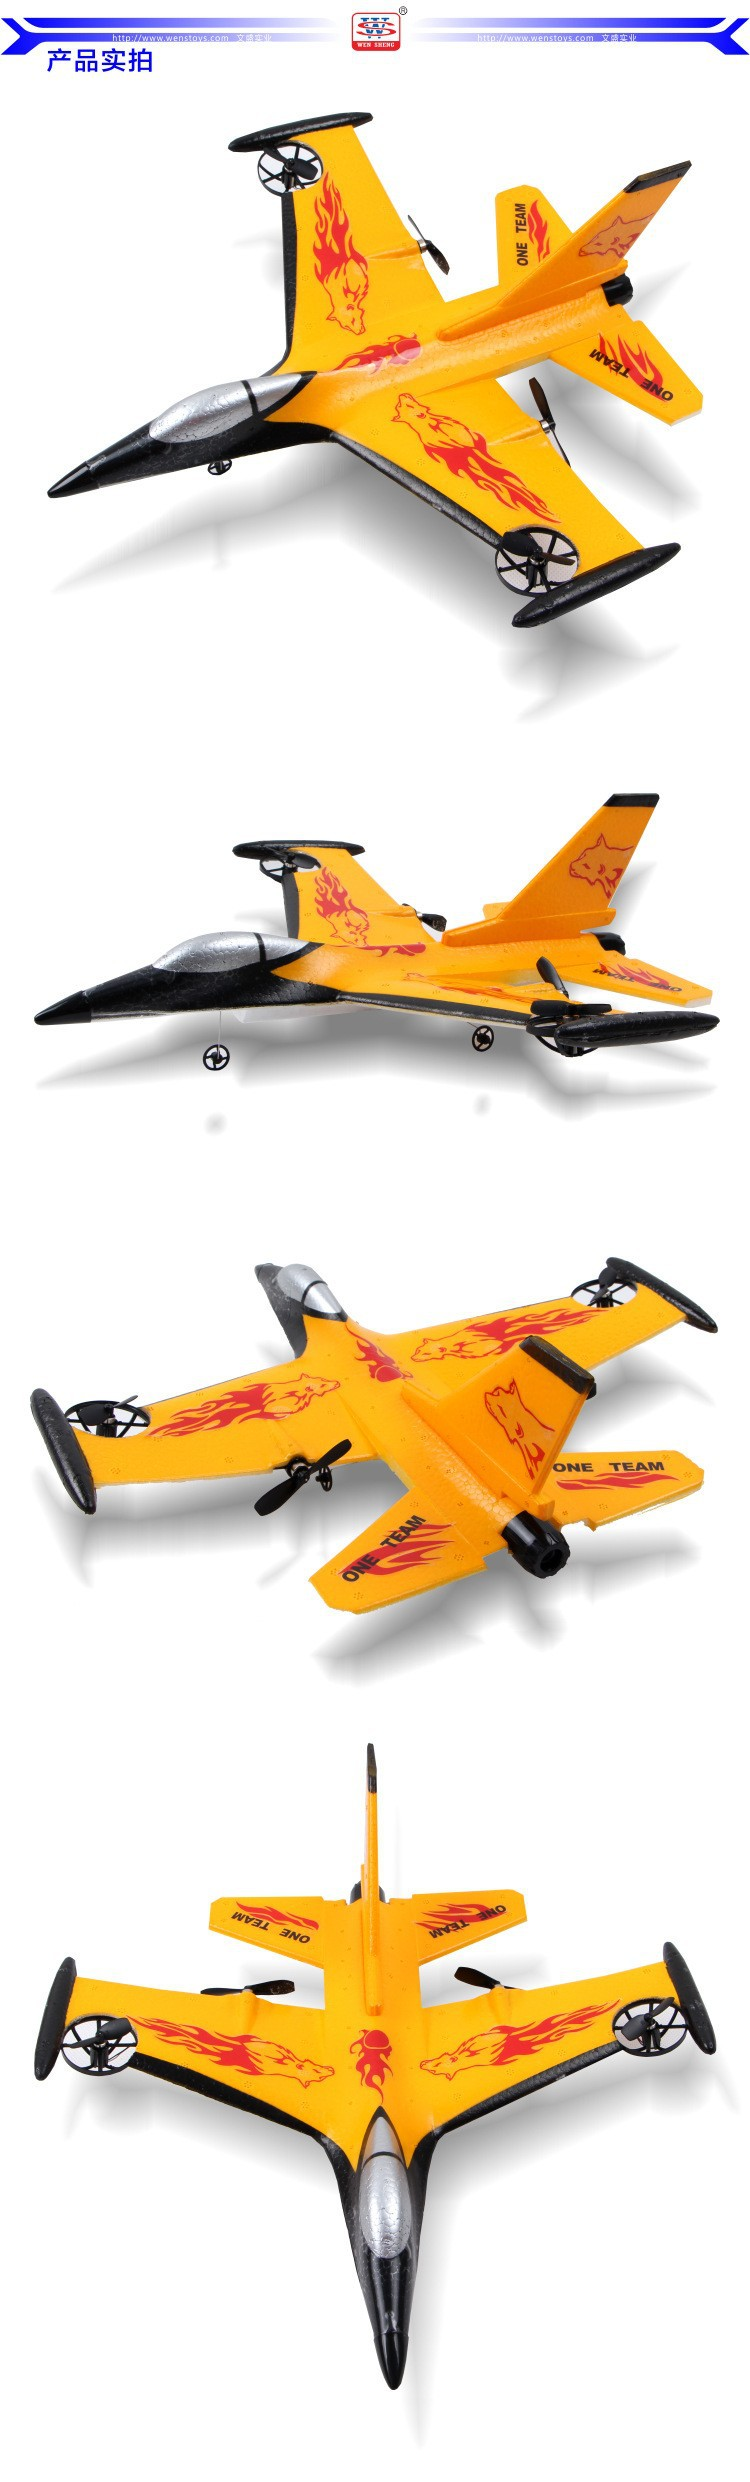 easy to fly remote control helicopter with 2130031528 4ch Rc Remote Controlled Fighter Plane F 16 Fighting Falcon Model Durable Epp Material Yellow on Top 10 Best Drones Kids 2017 Hot Holiday Tech Toys moreover HCW520 Auto Induction Remote Control Flying Ball With Music Dazzling Light Transparent White 359388 in addition Remote Control Toy moreover Rc Helicopter Model For Beginner in addition 222386279541.